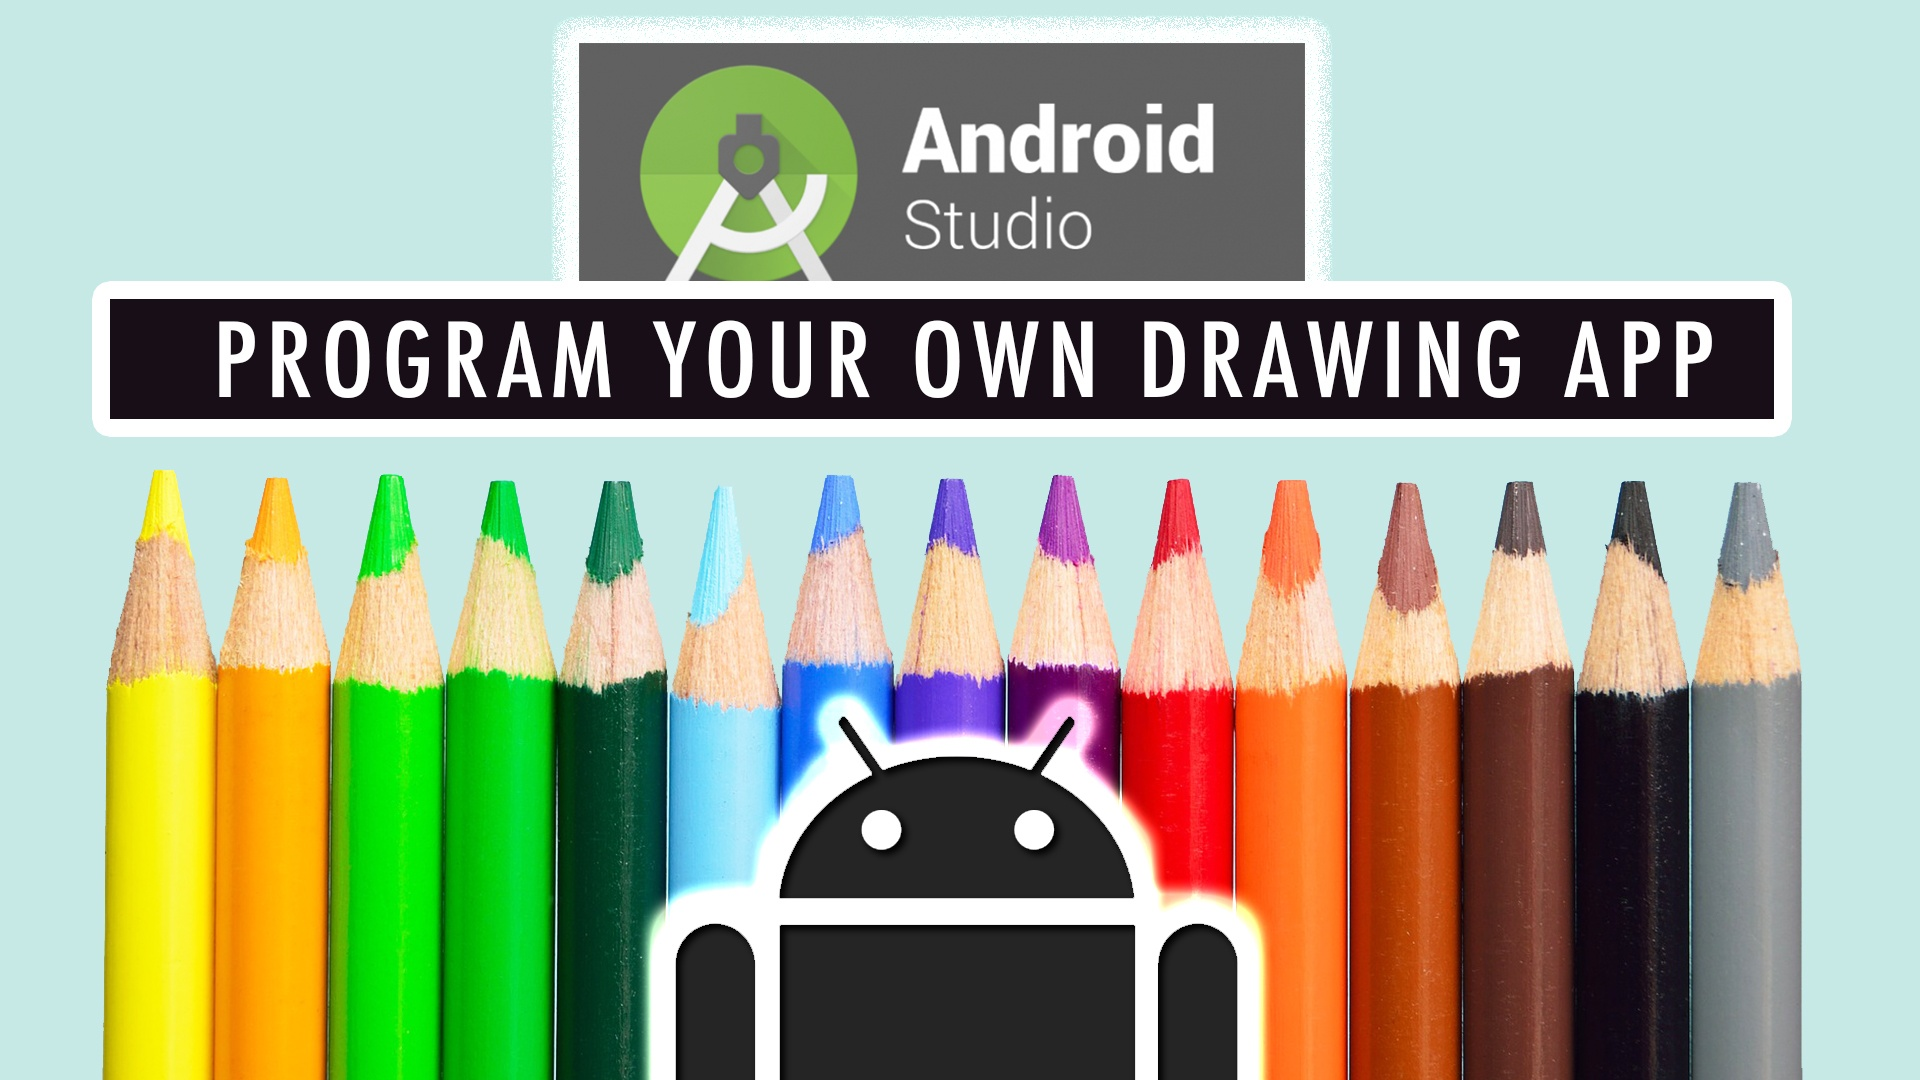 Program Your Own Drawing Application in Android Studio!